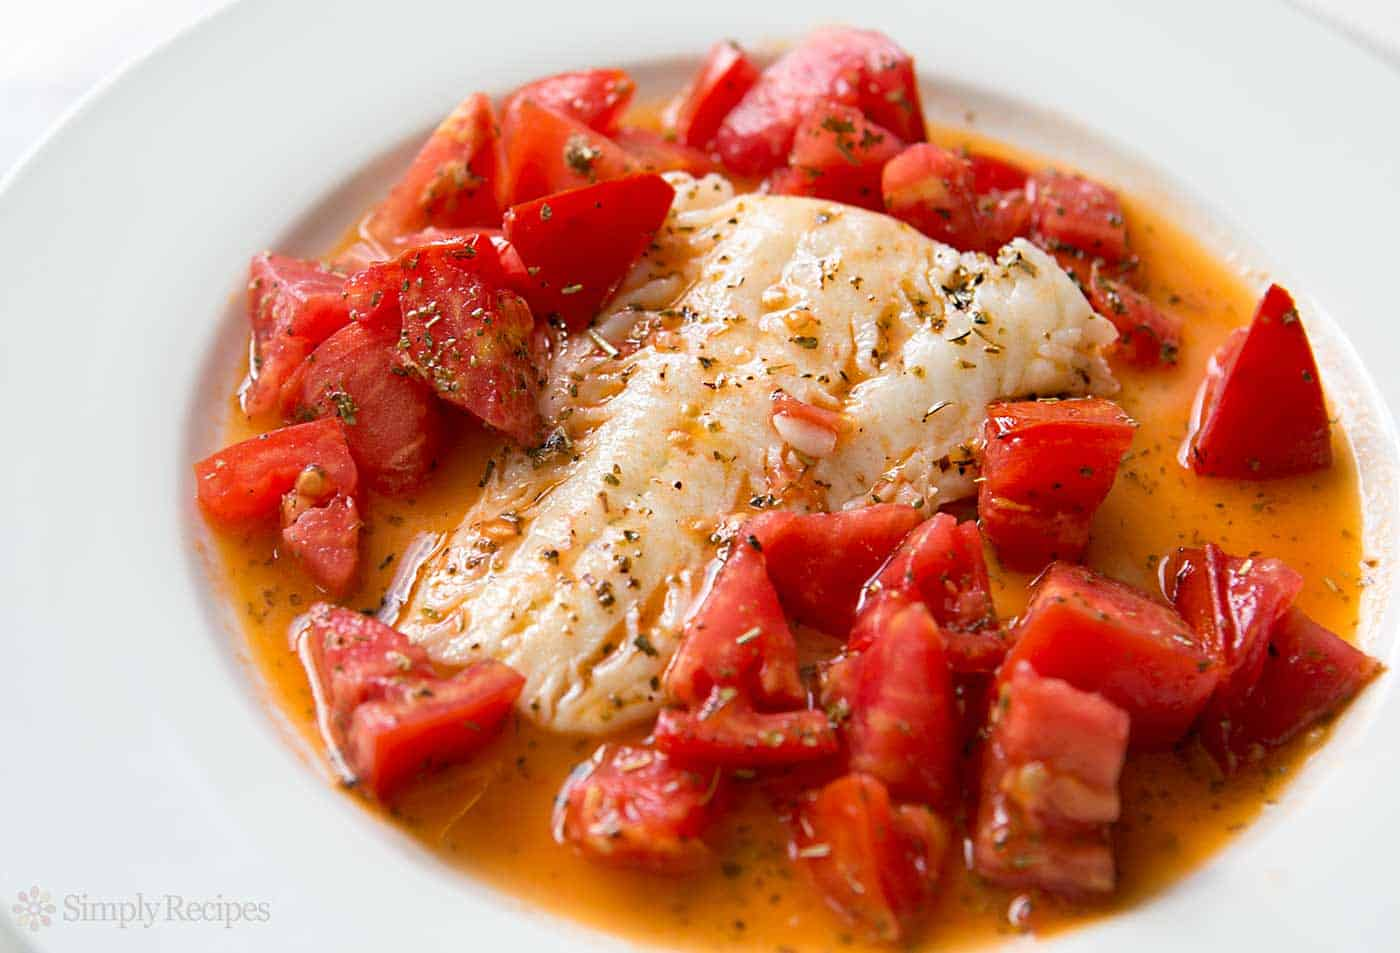 Cod sauteed in olive oil with fresh tomatoes